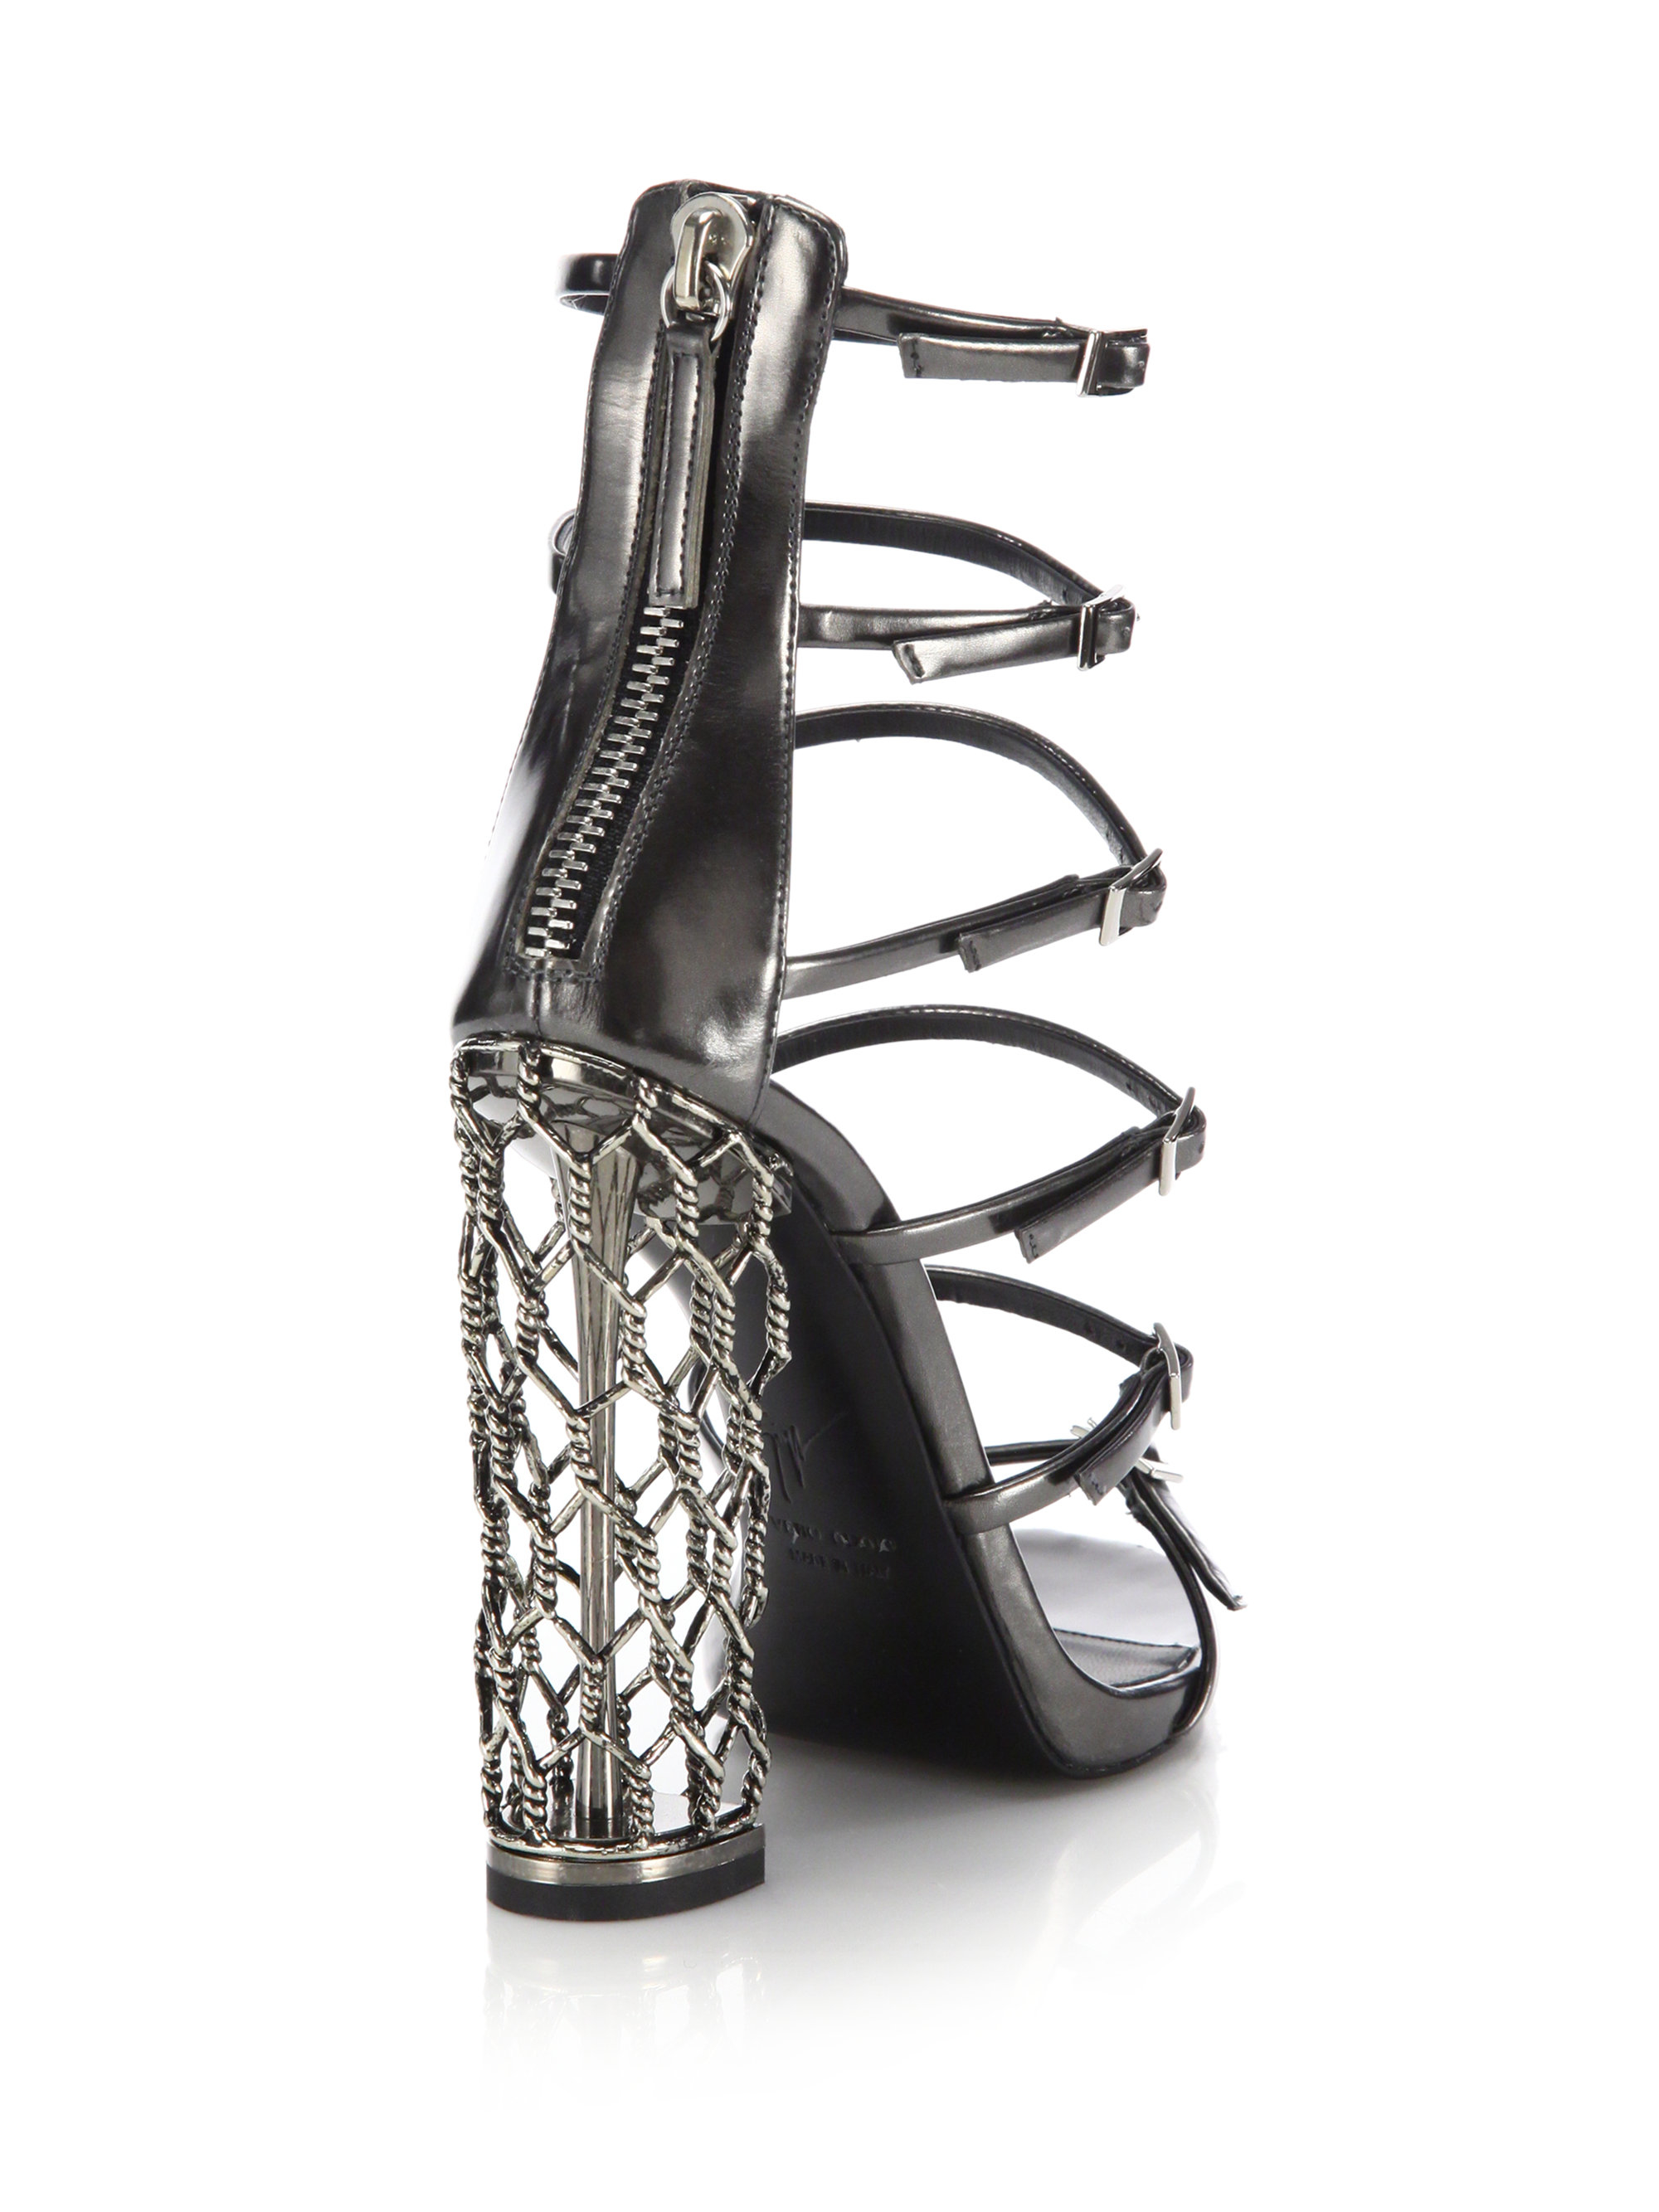 Giuseppe Zanotti Cage Leather Sandals discounts clearance wide range of discount choice clearance affordable wiki sale online yiGUF